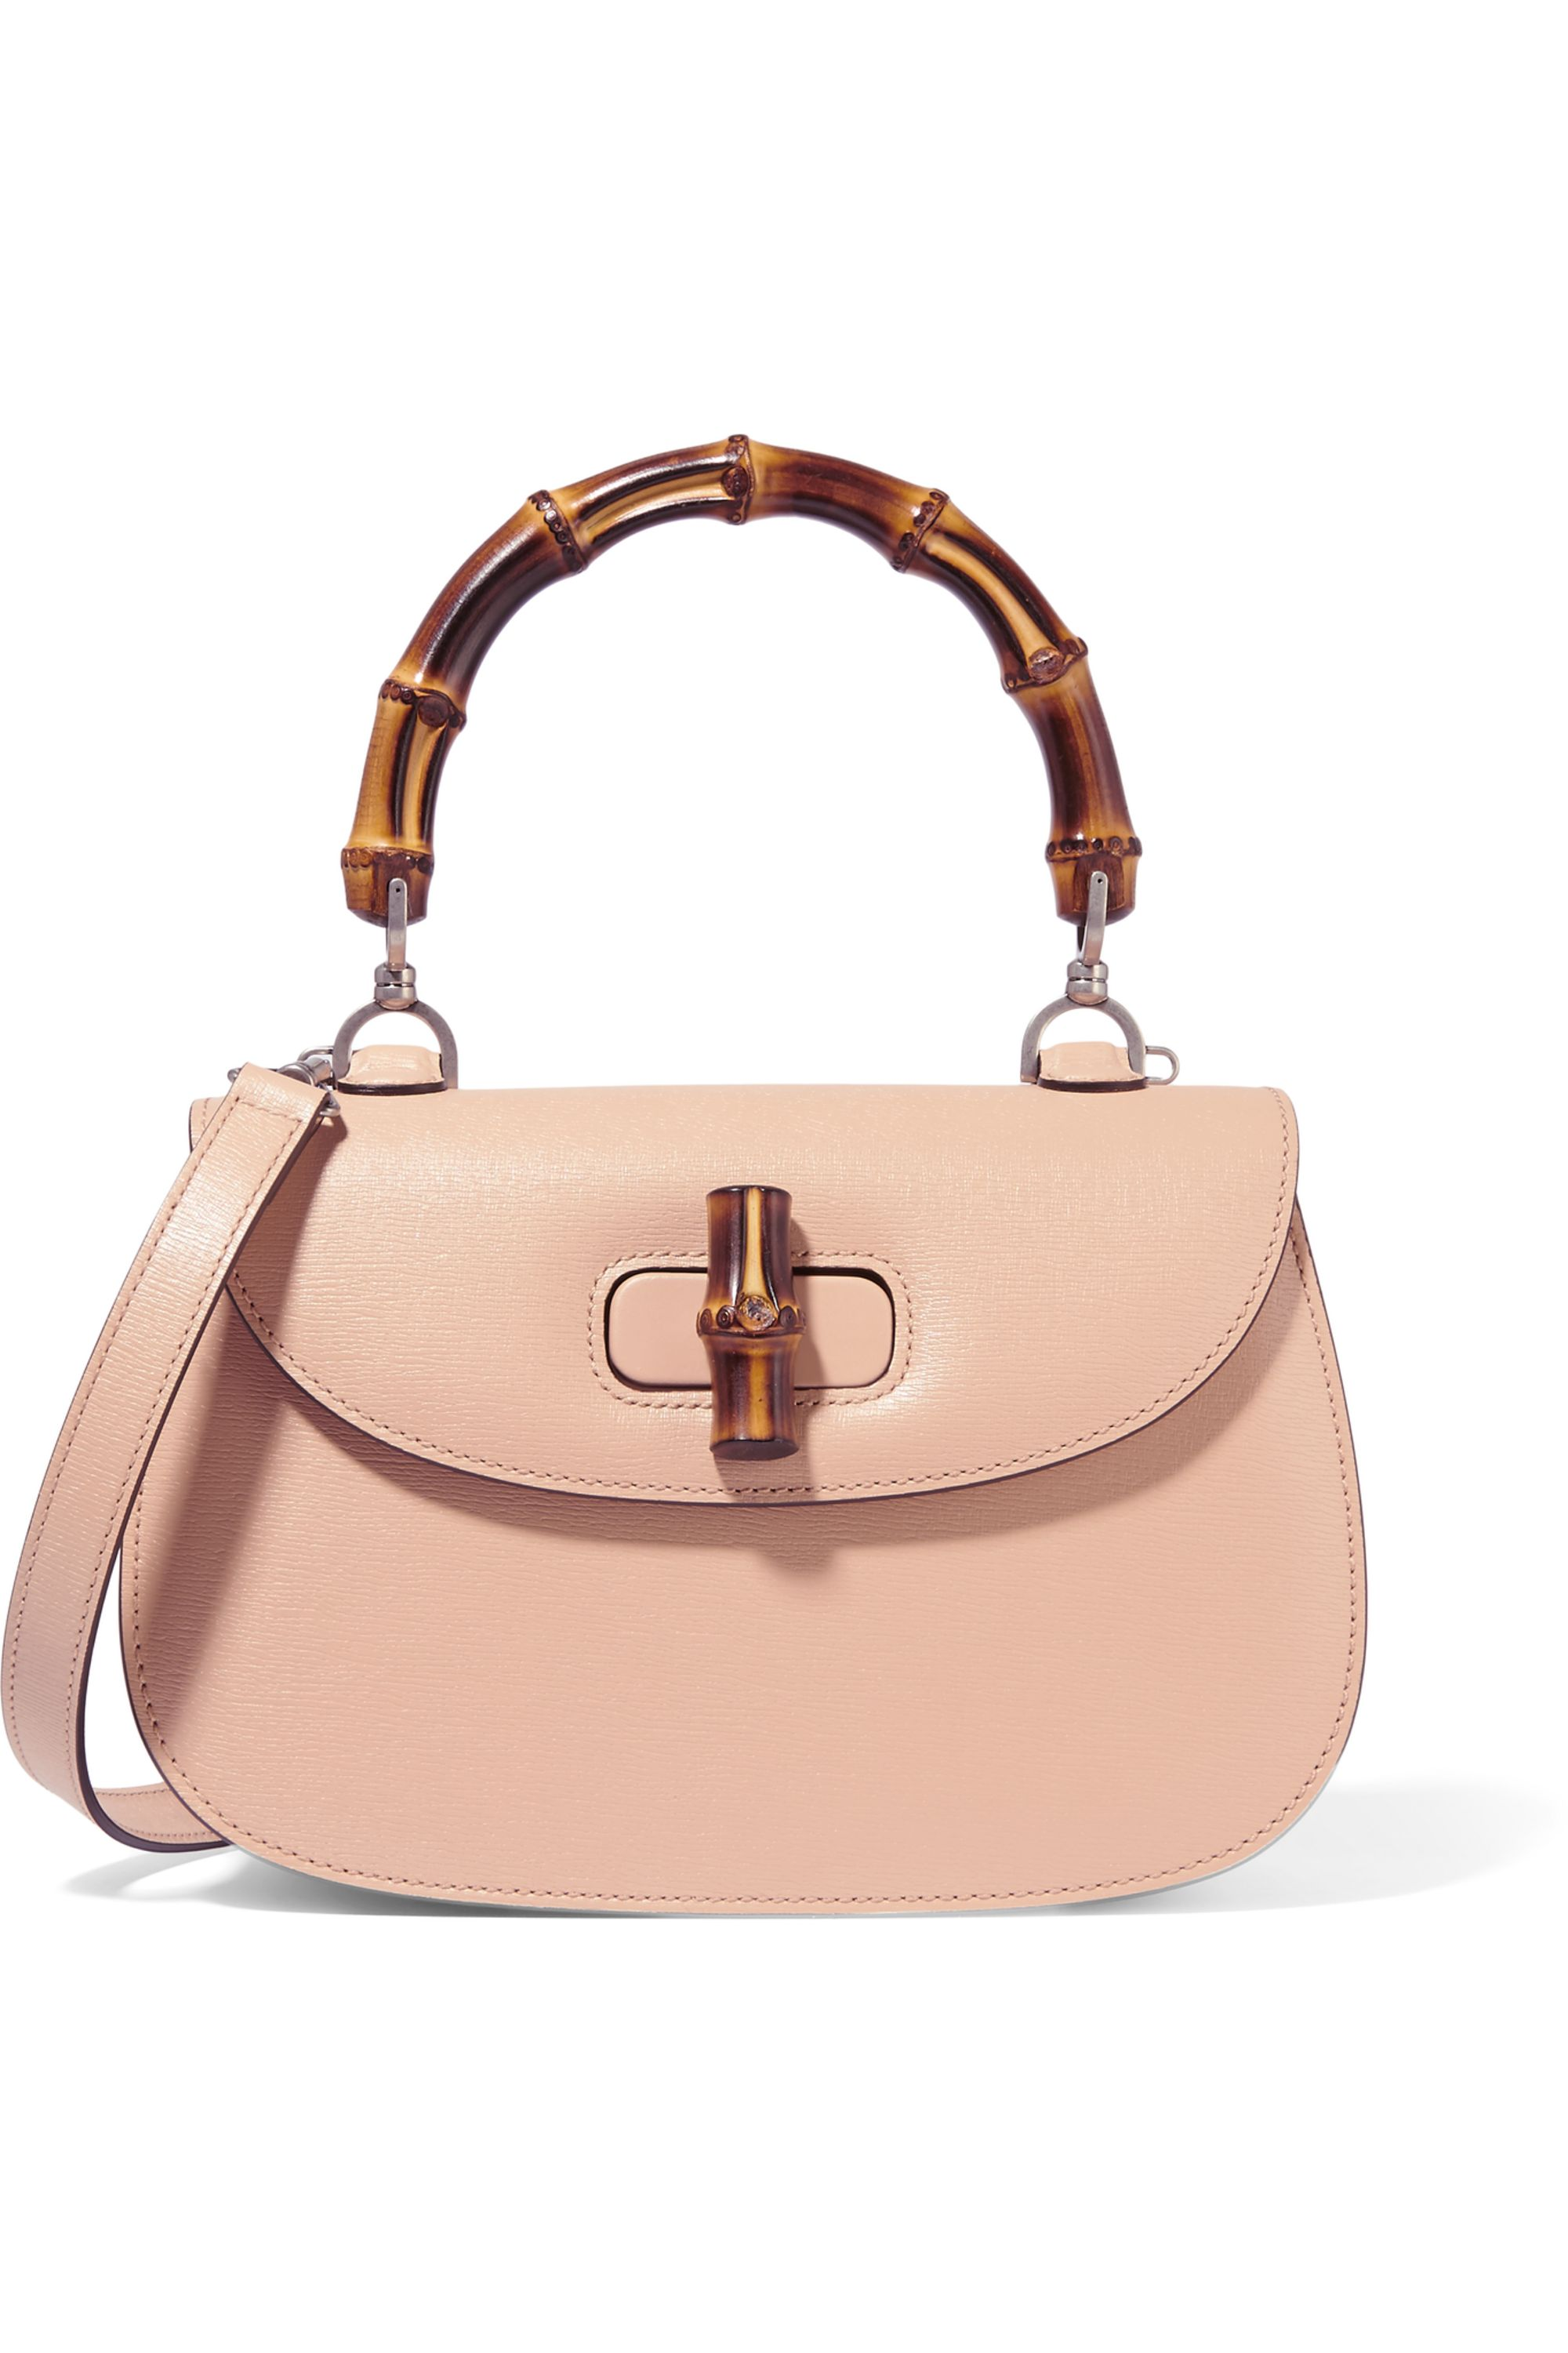 Gucci Bamboo Classic leather shoulder bag